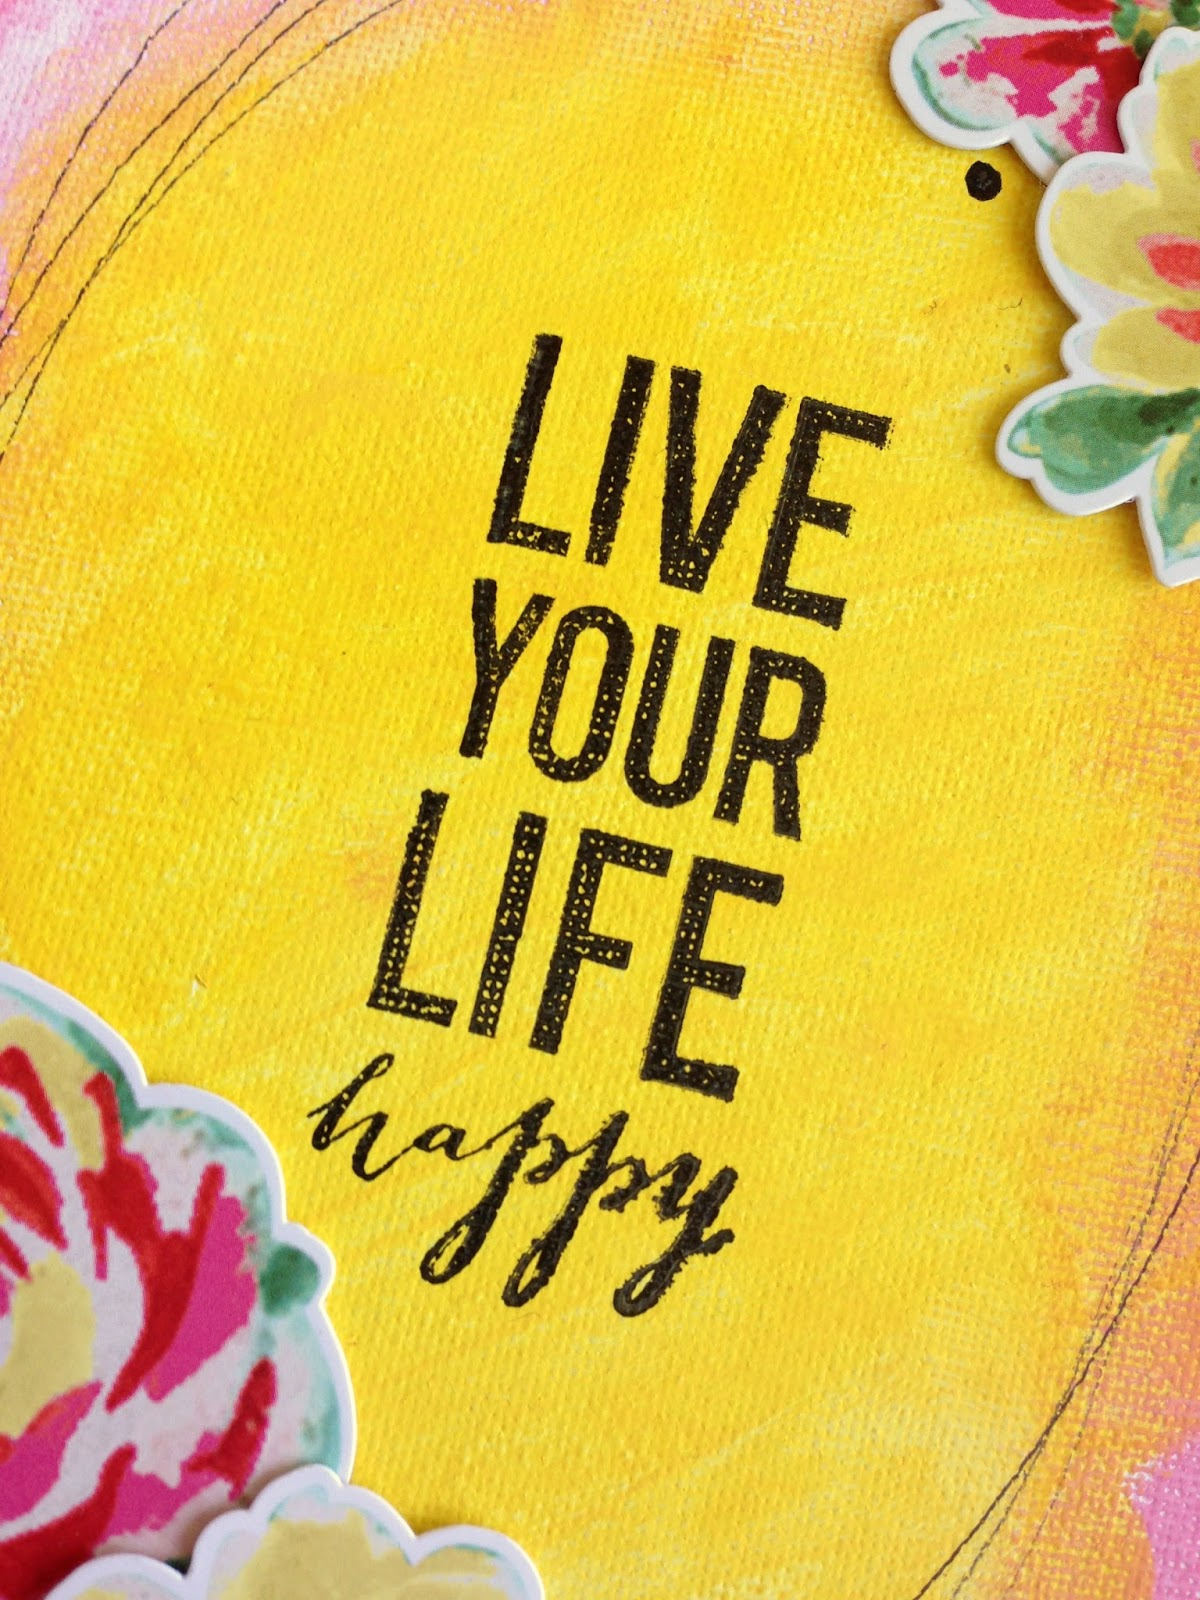 Precocious Paper: Live Your Life Happy